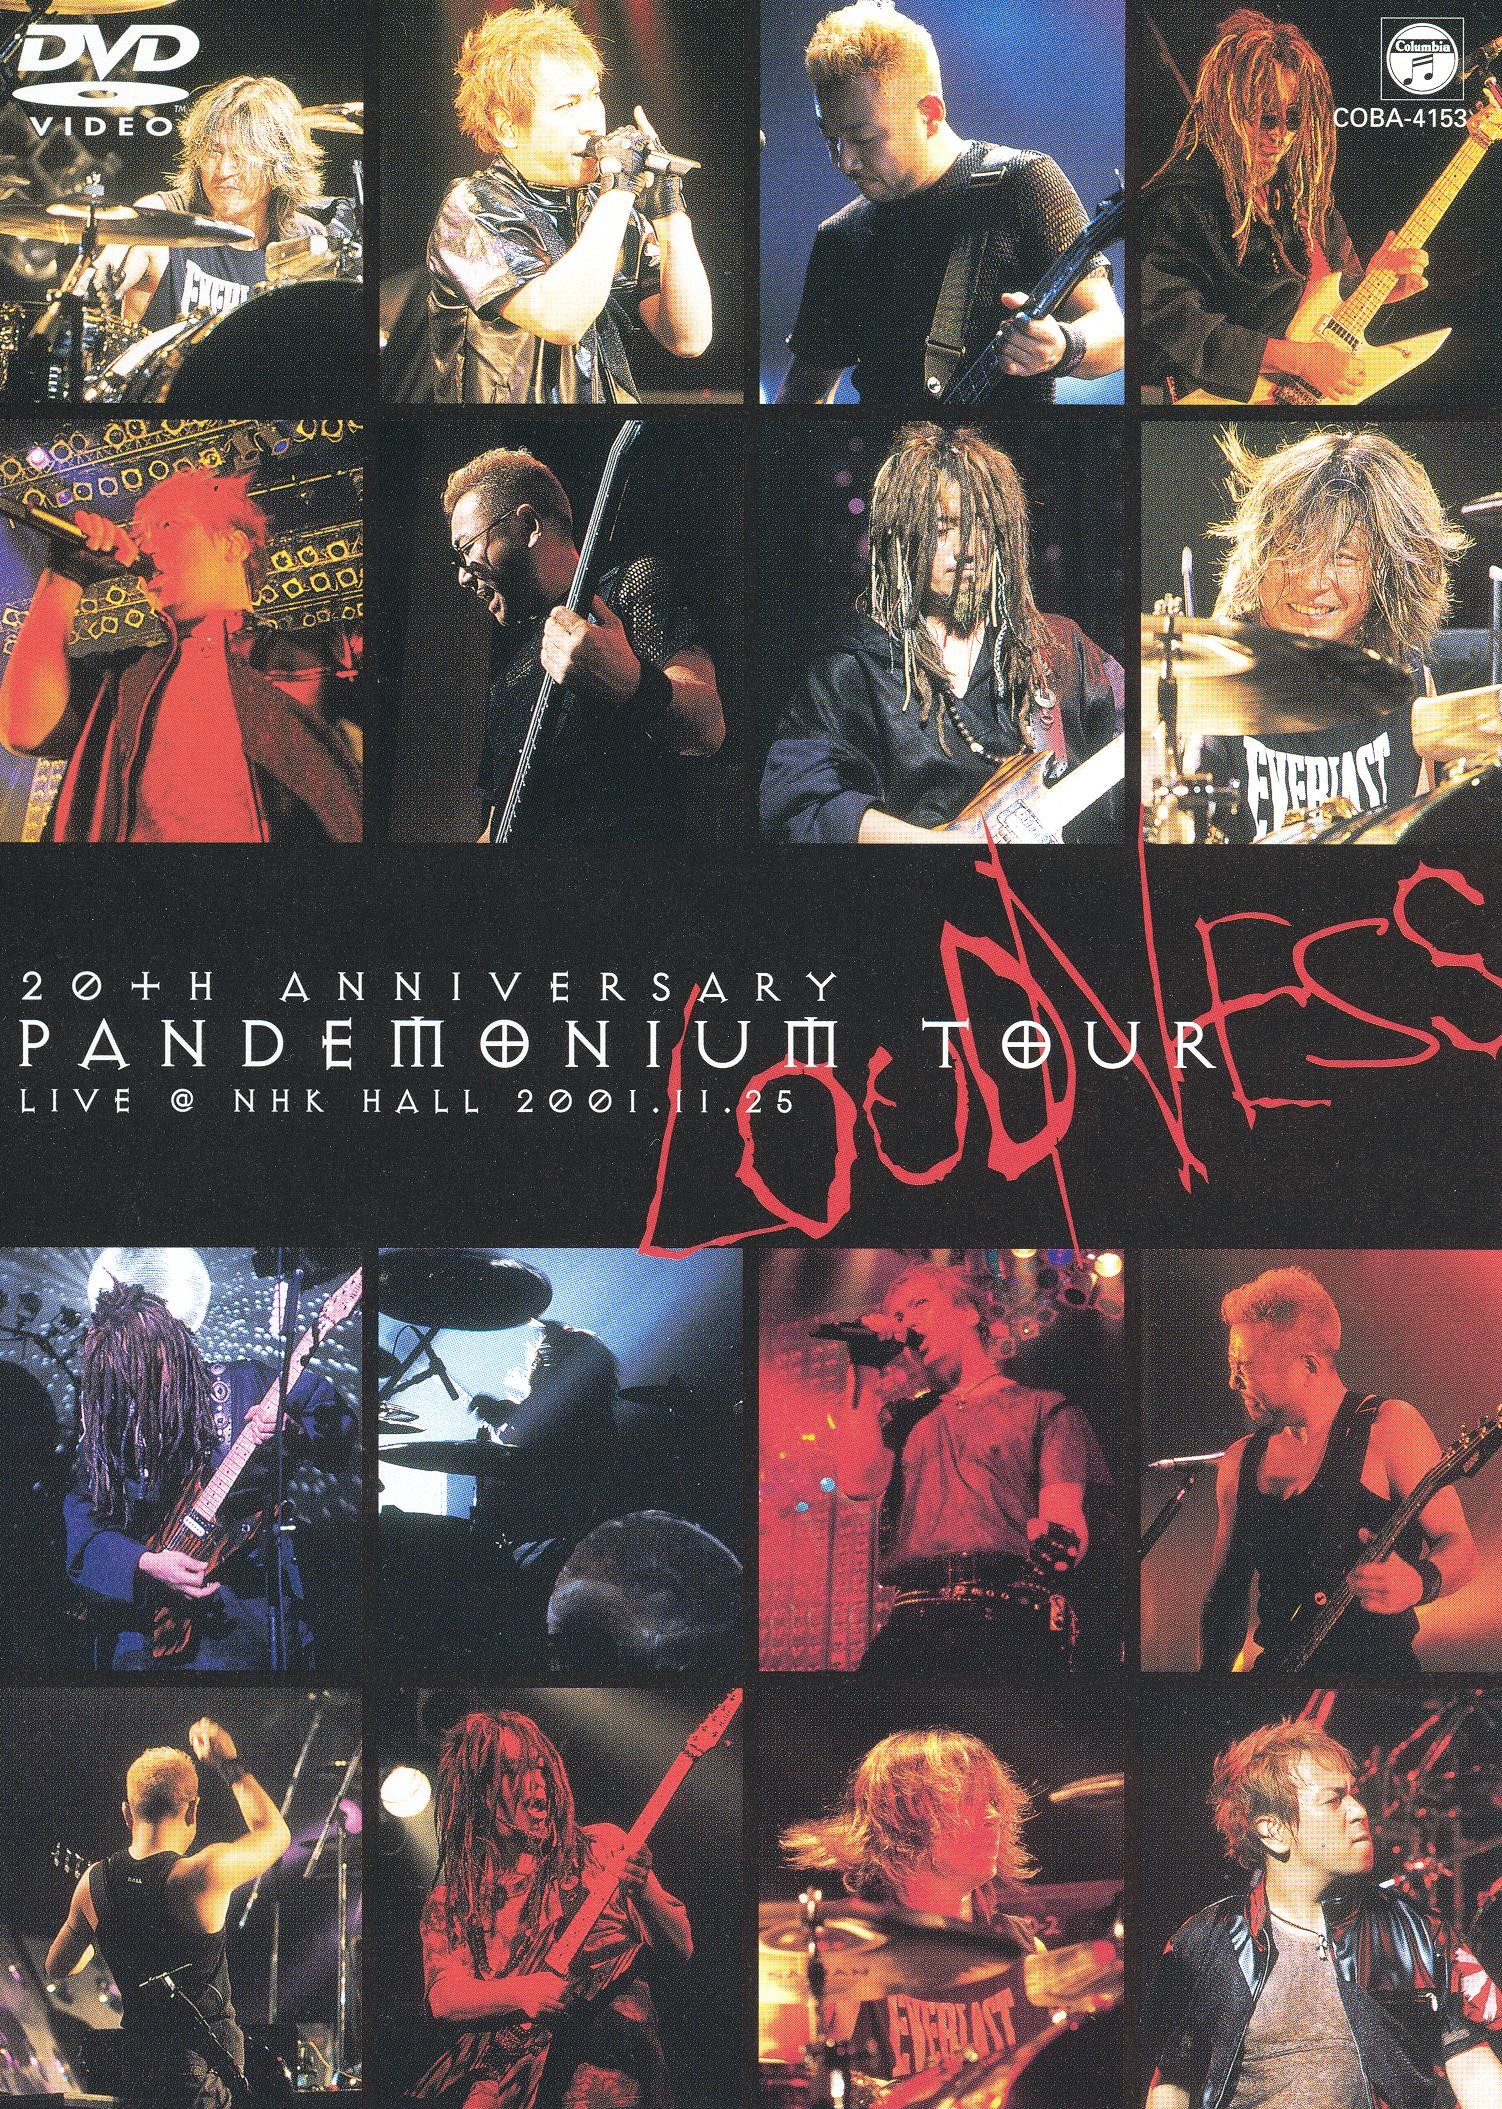 Loudness: 20th Anniversary Pandemonium Tour